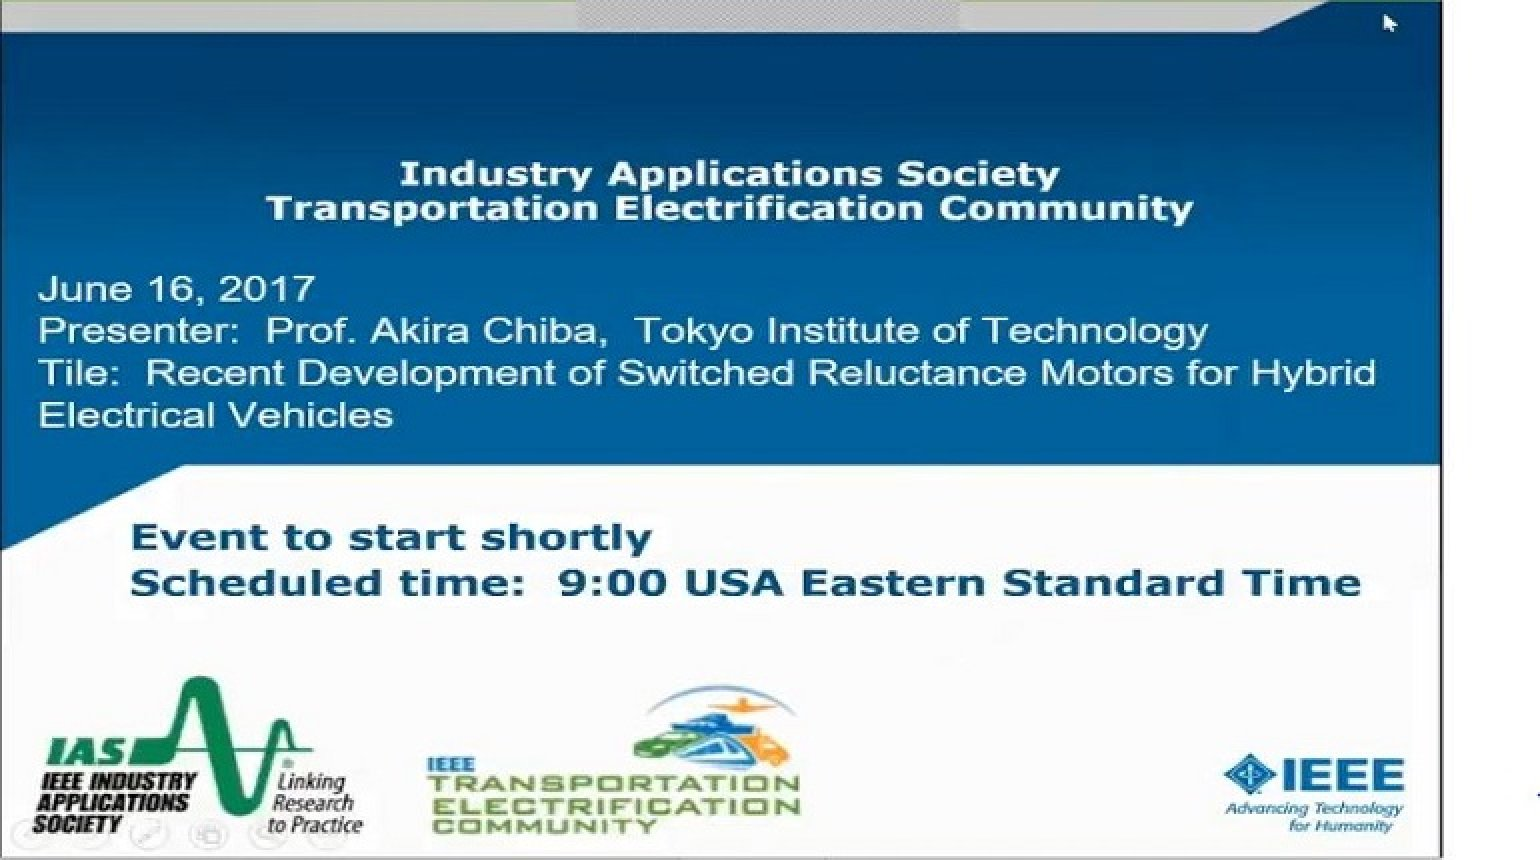 IAS Webinar Series - Recent Development of Switched Reluctance Motors for Hybrid Electrical Vehicles